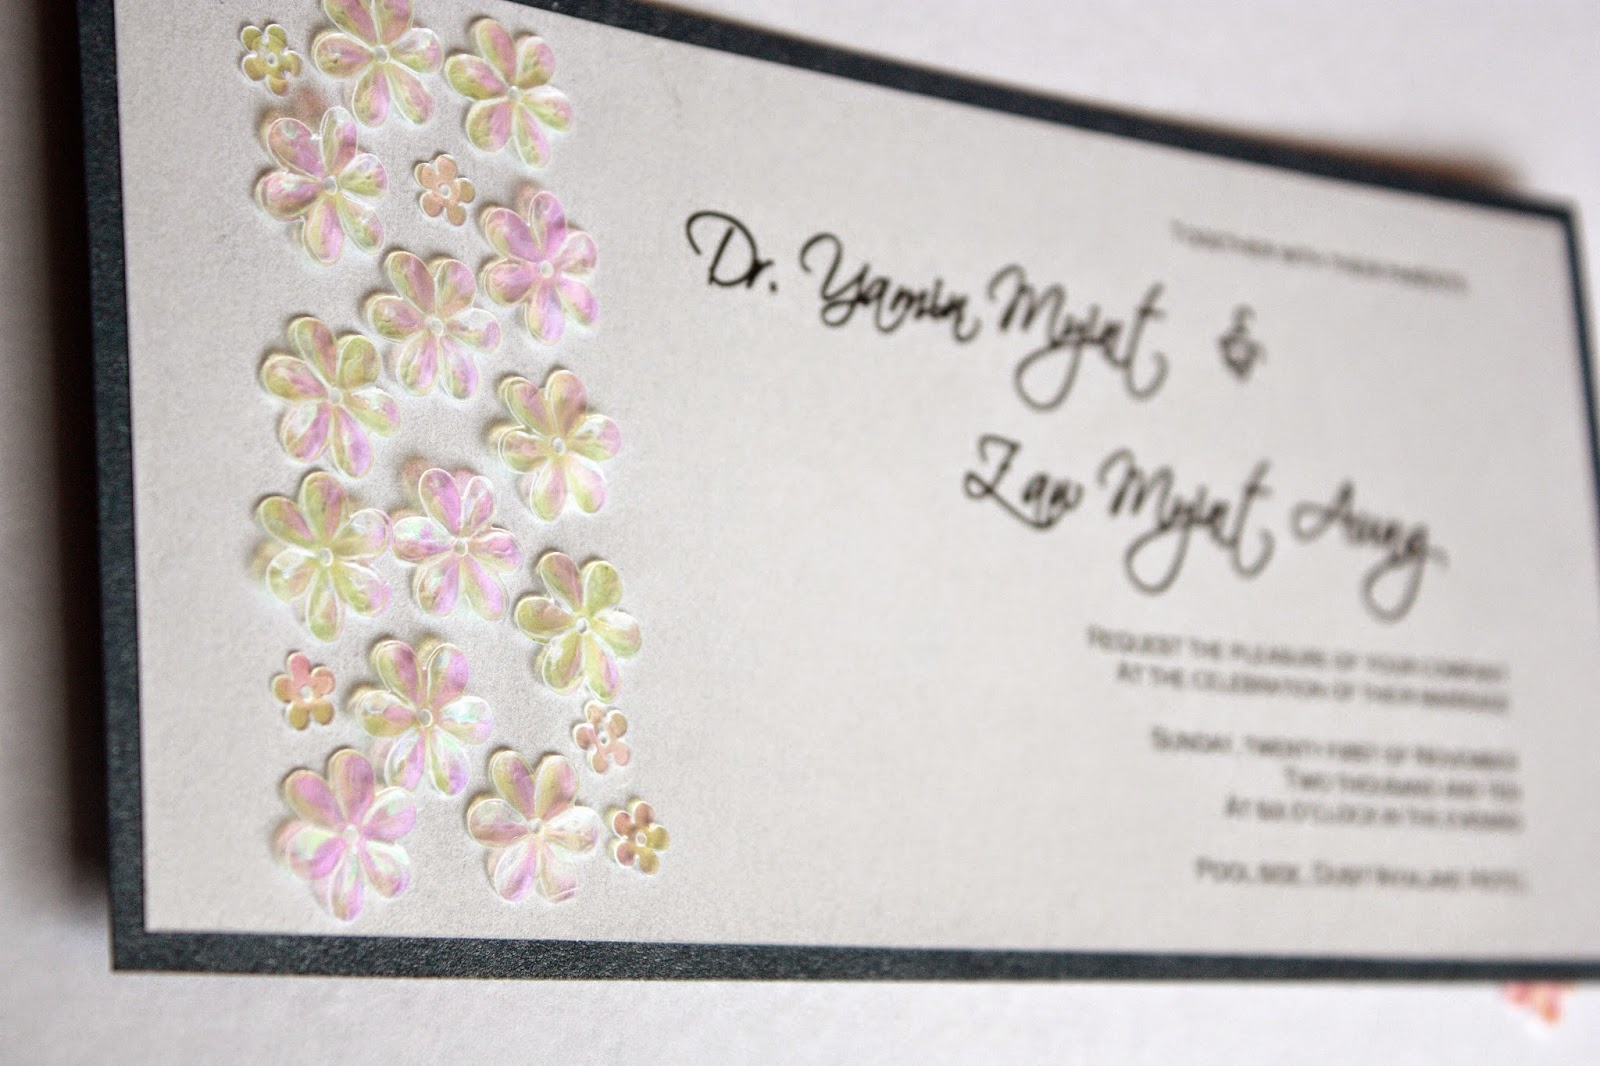 Luxurious flower garden handmade wedding invitation card